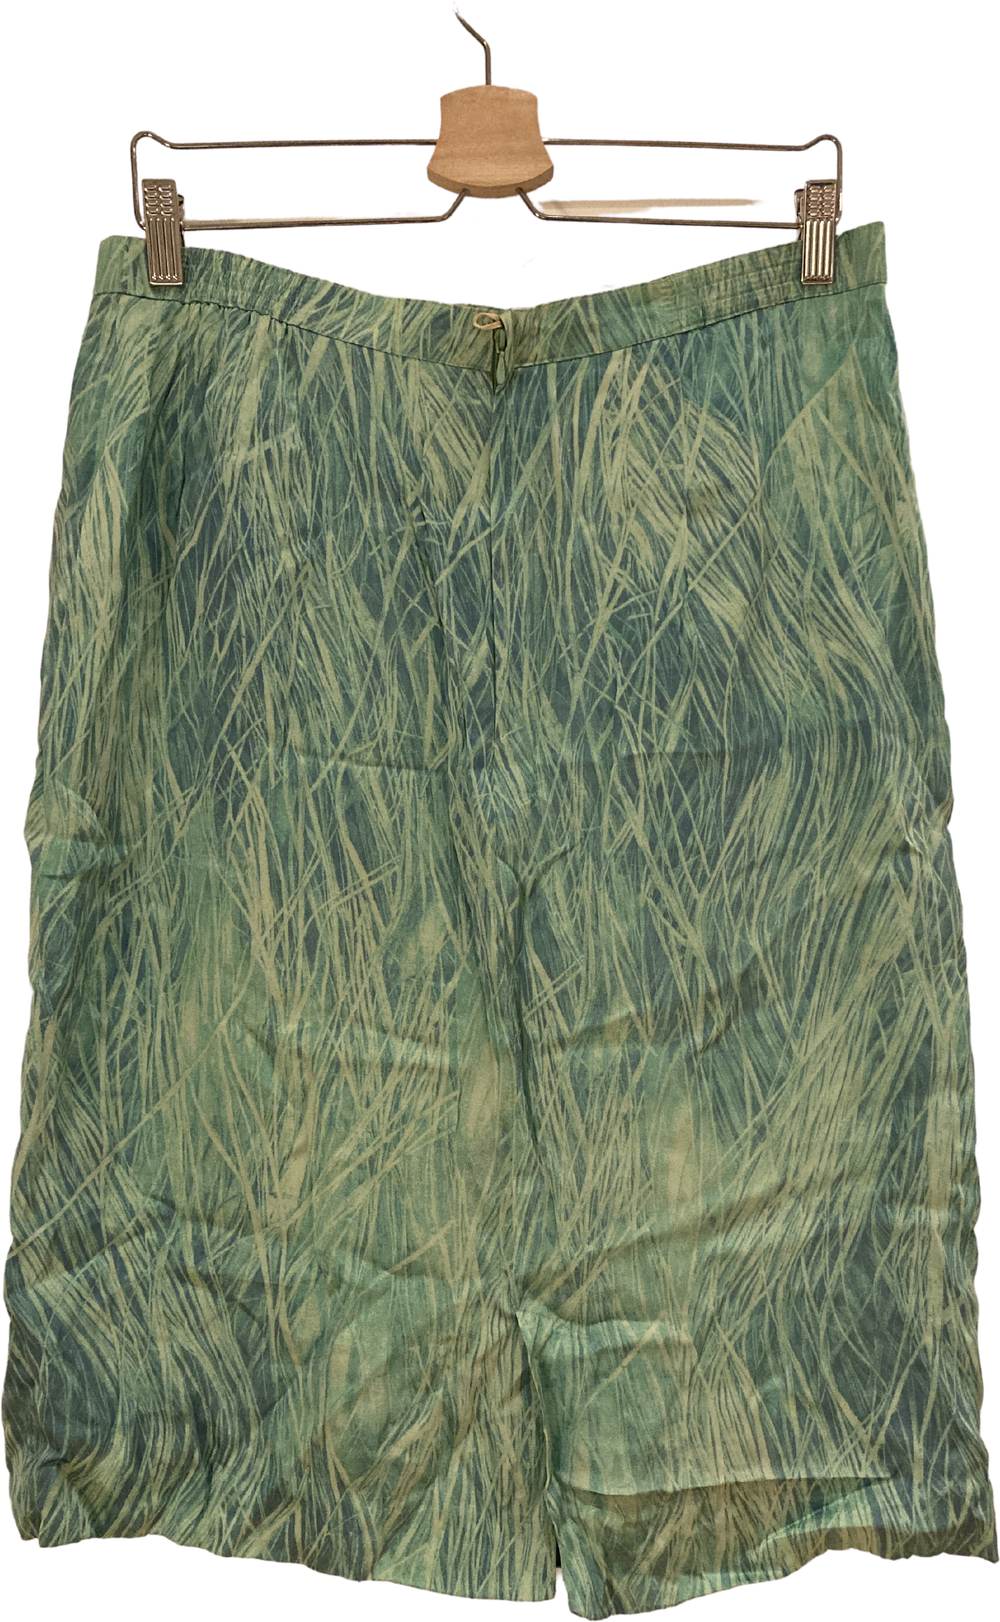 Pea Soup Green Silk Vintage Midi Skirt